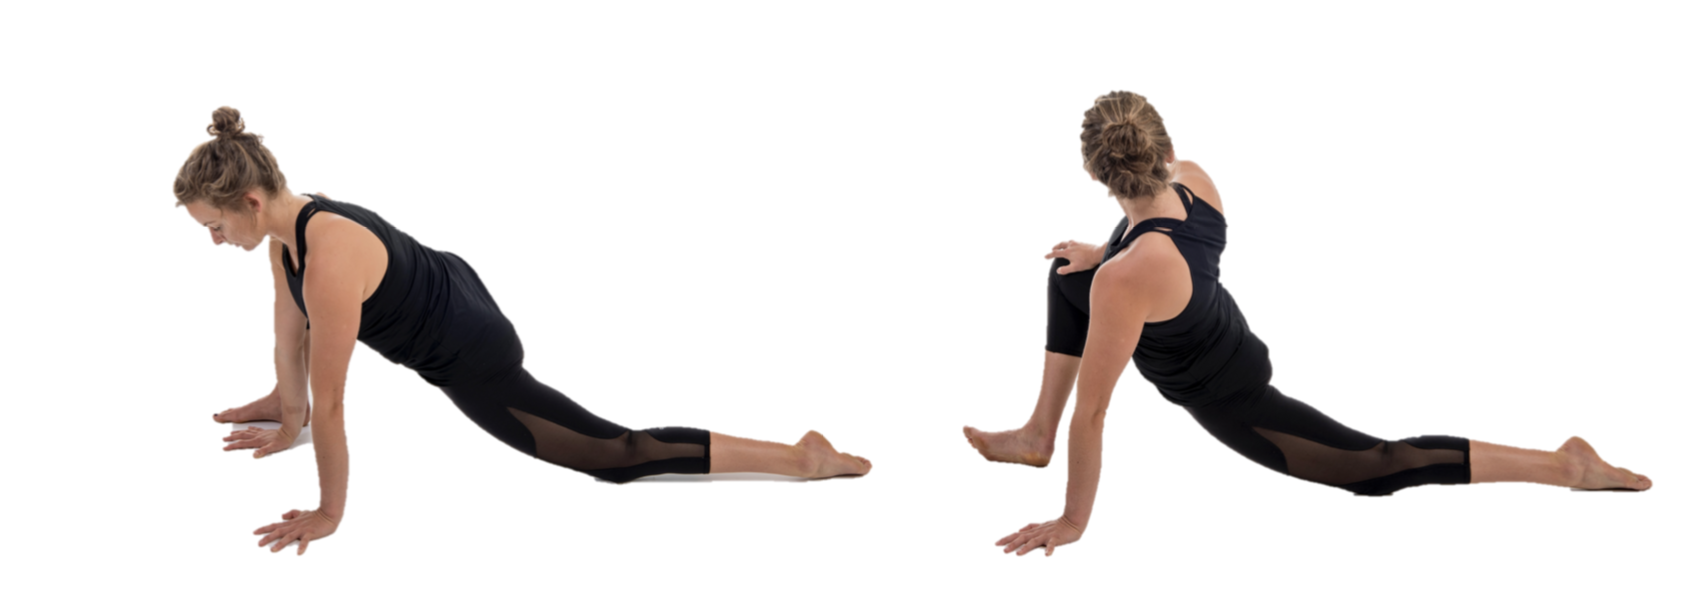 Runners Lunge and variant stretch for rowers